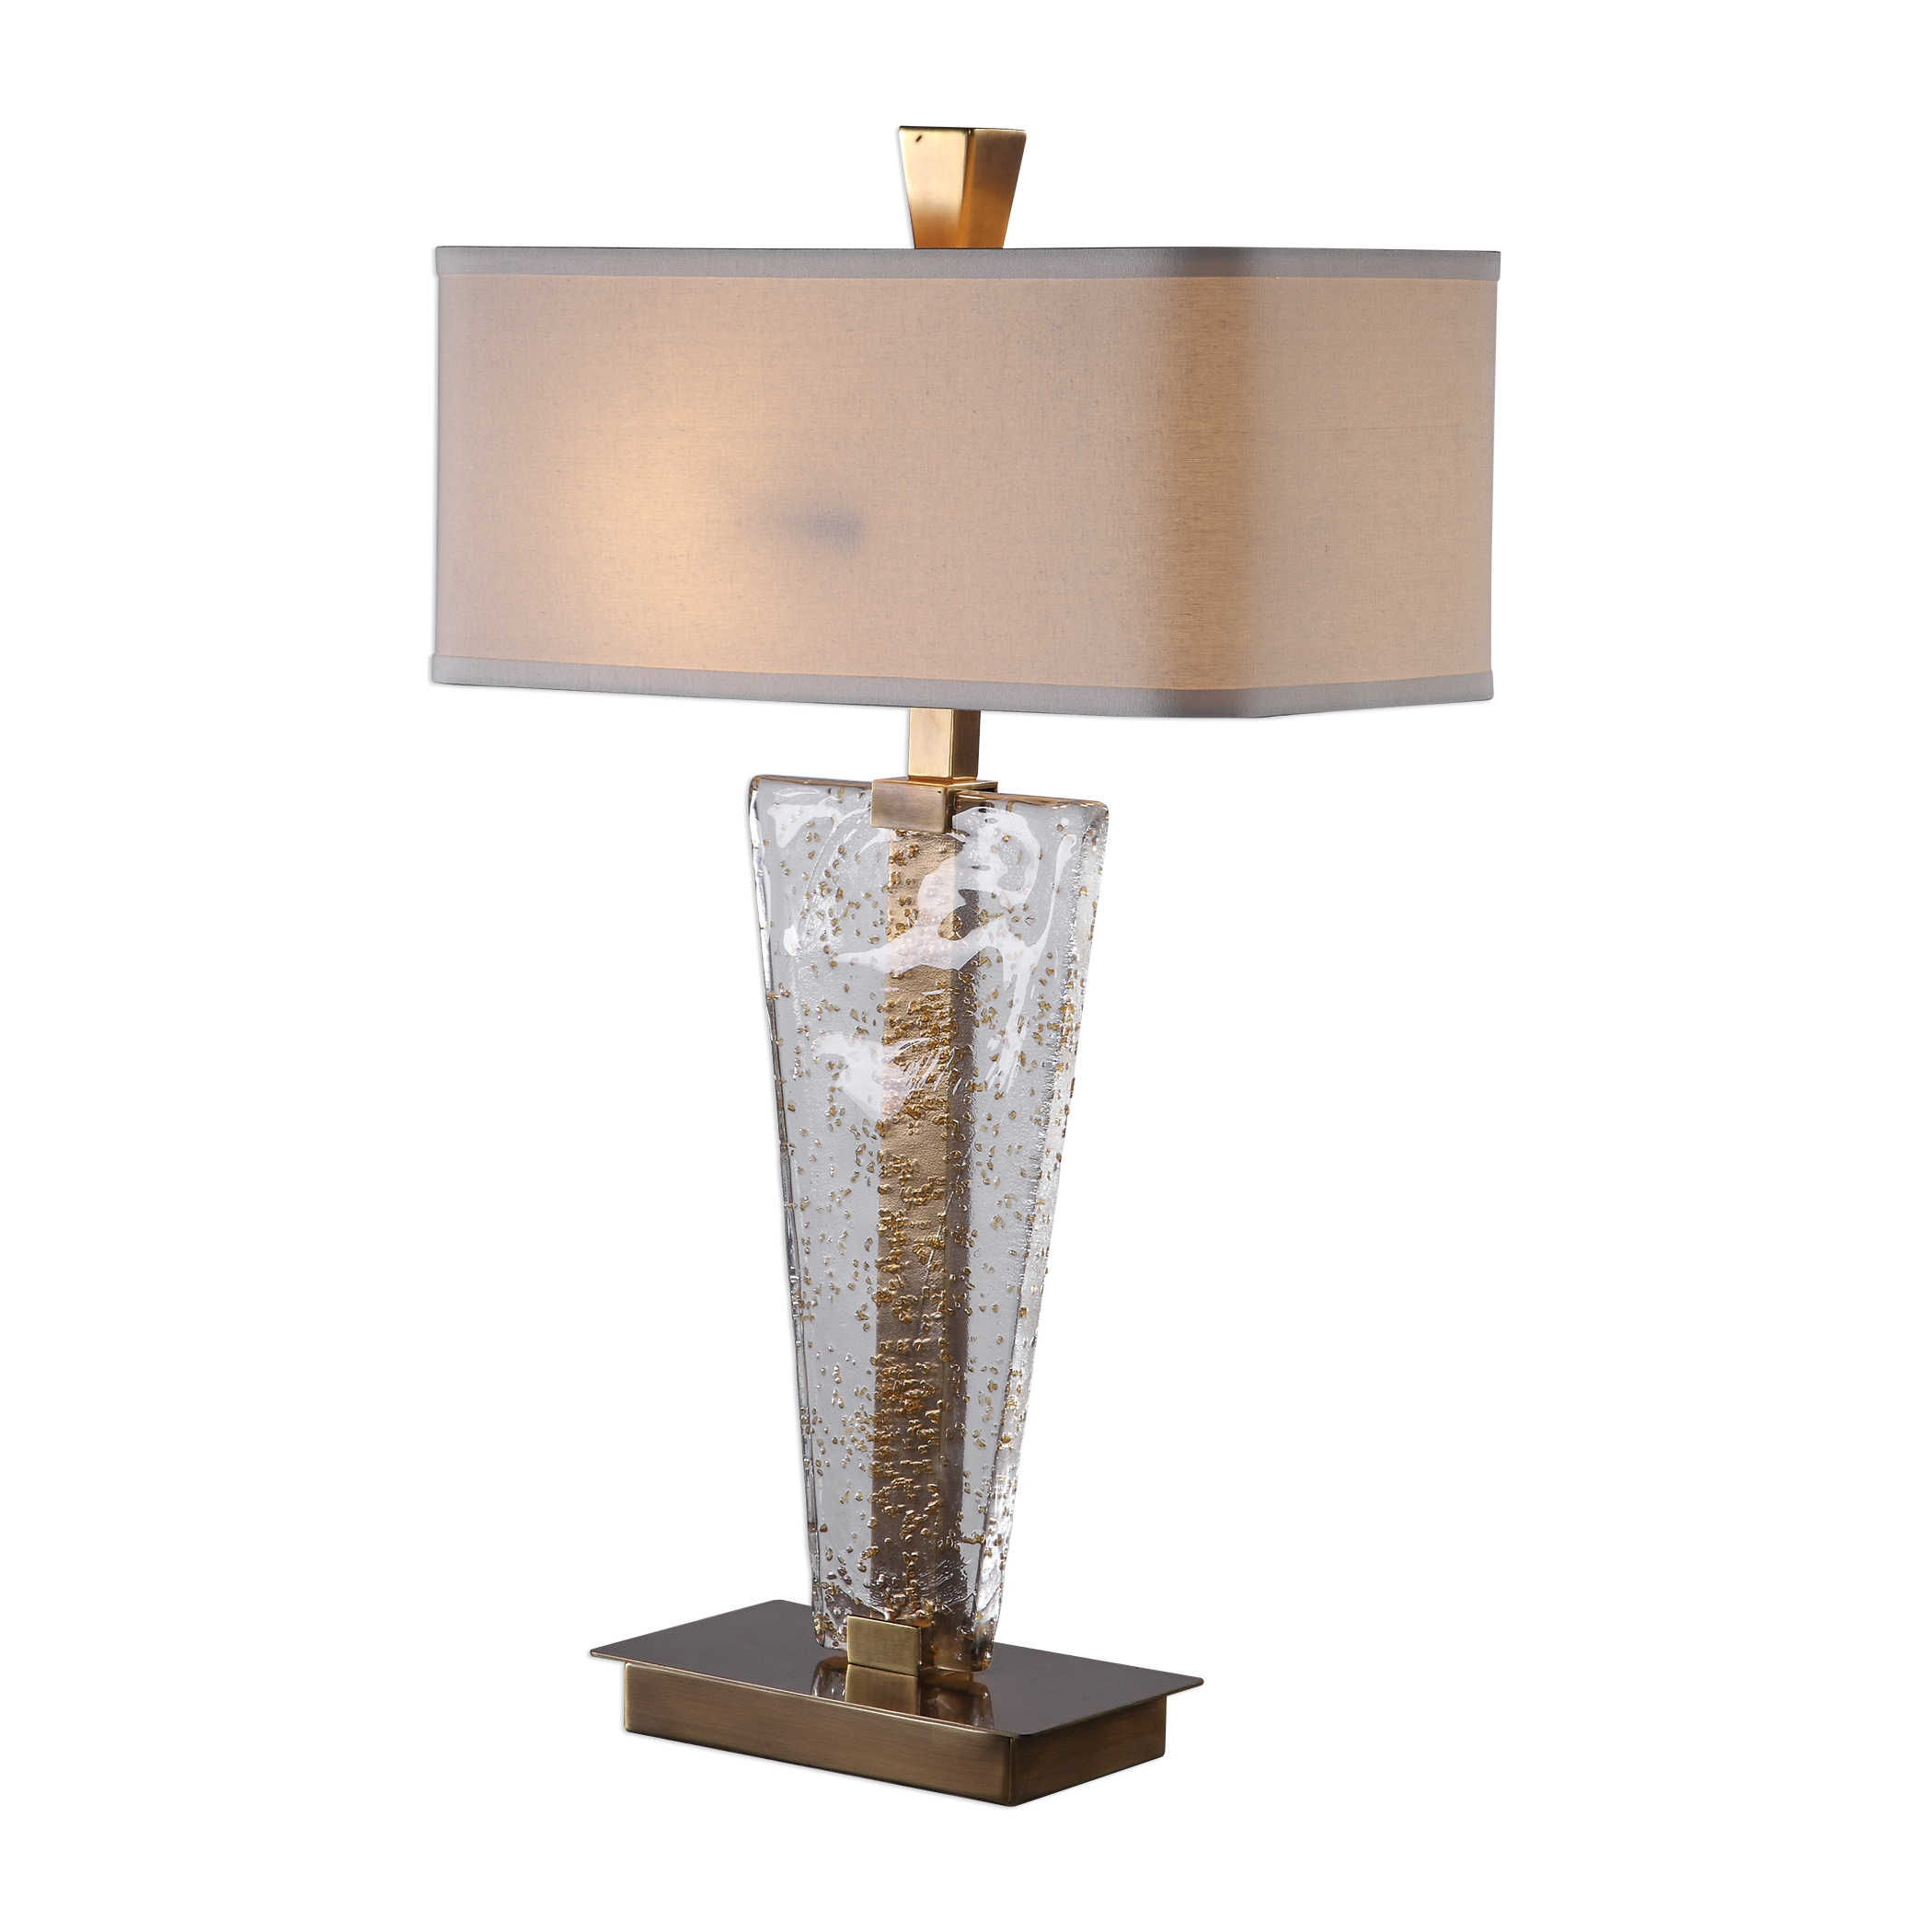 Kemper Table Lamp Revelation By Uttermost